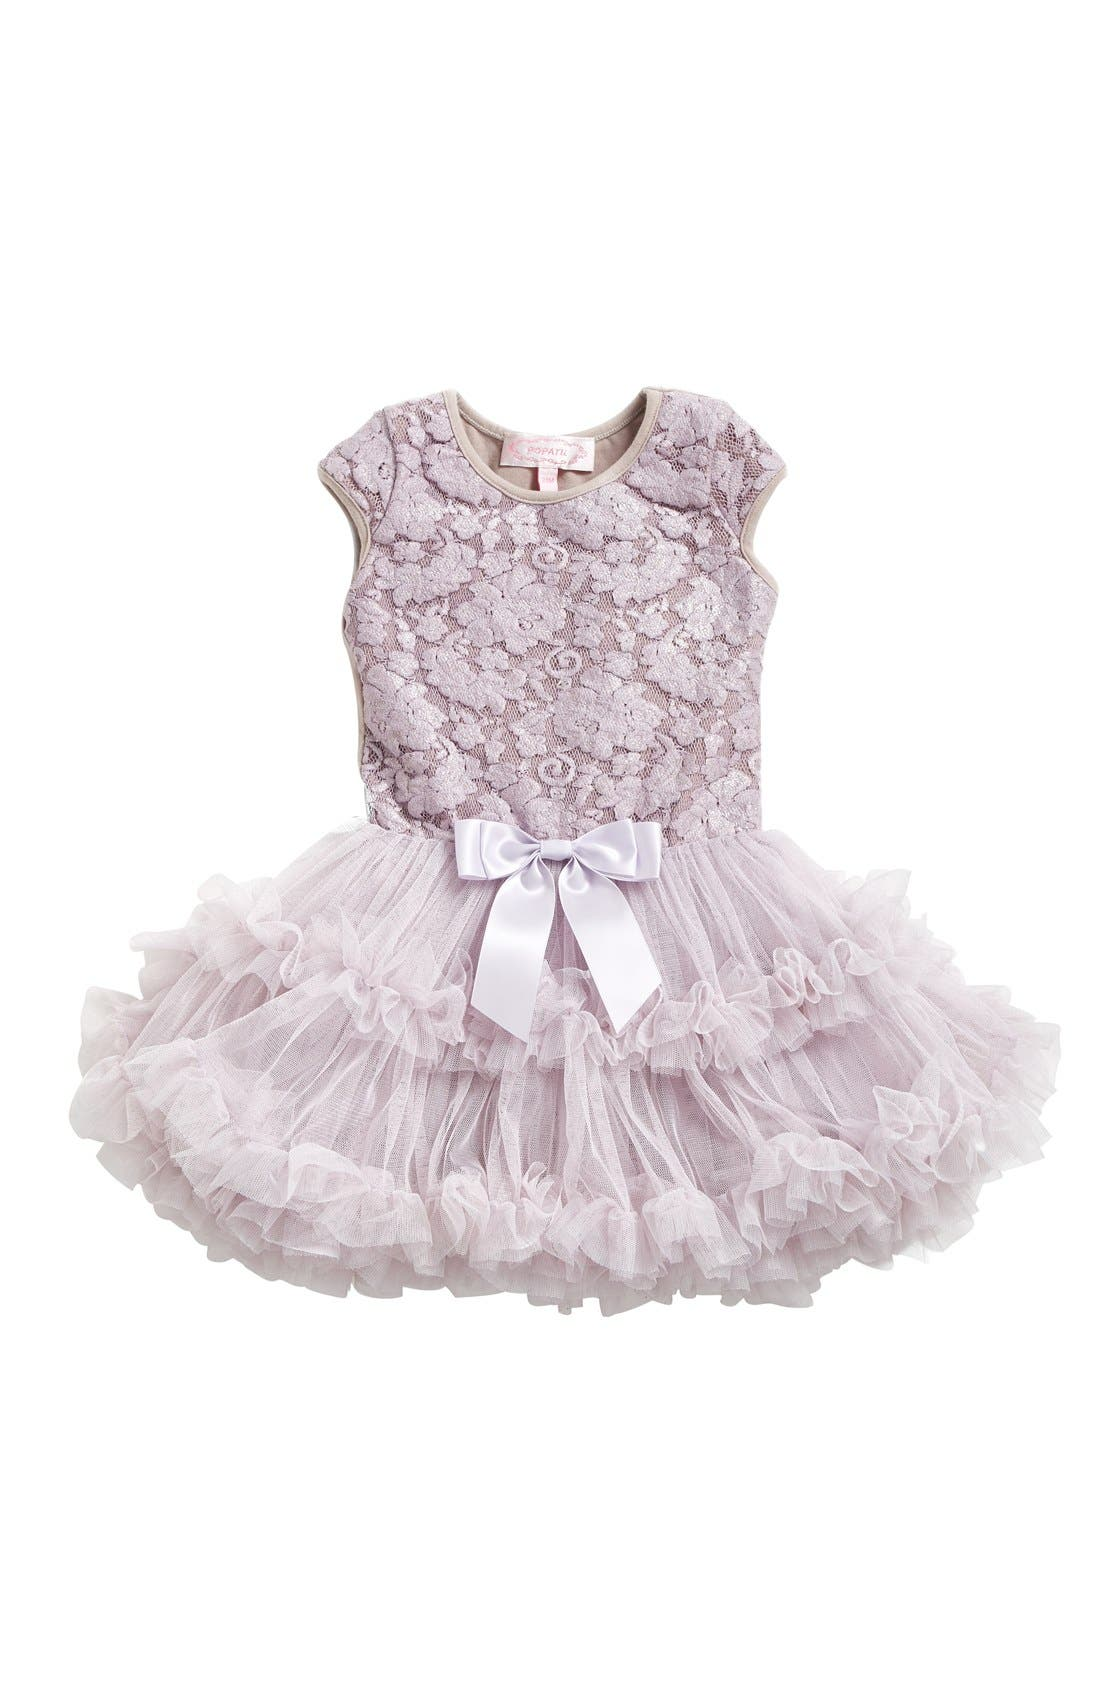 Popatu Lace Pettidress (Baby Girls)